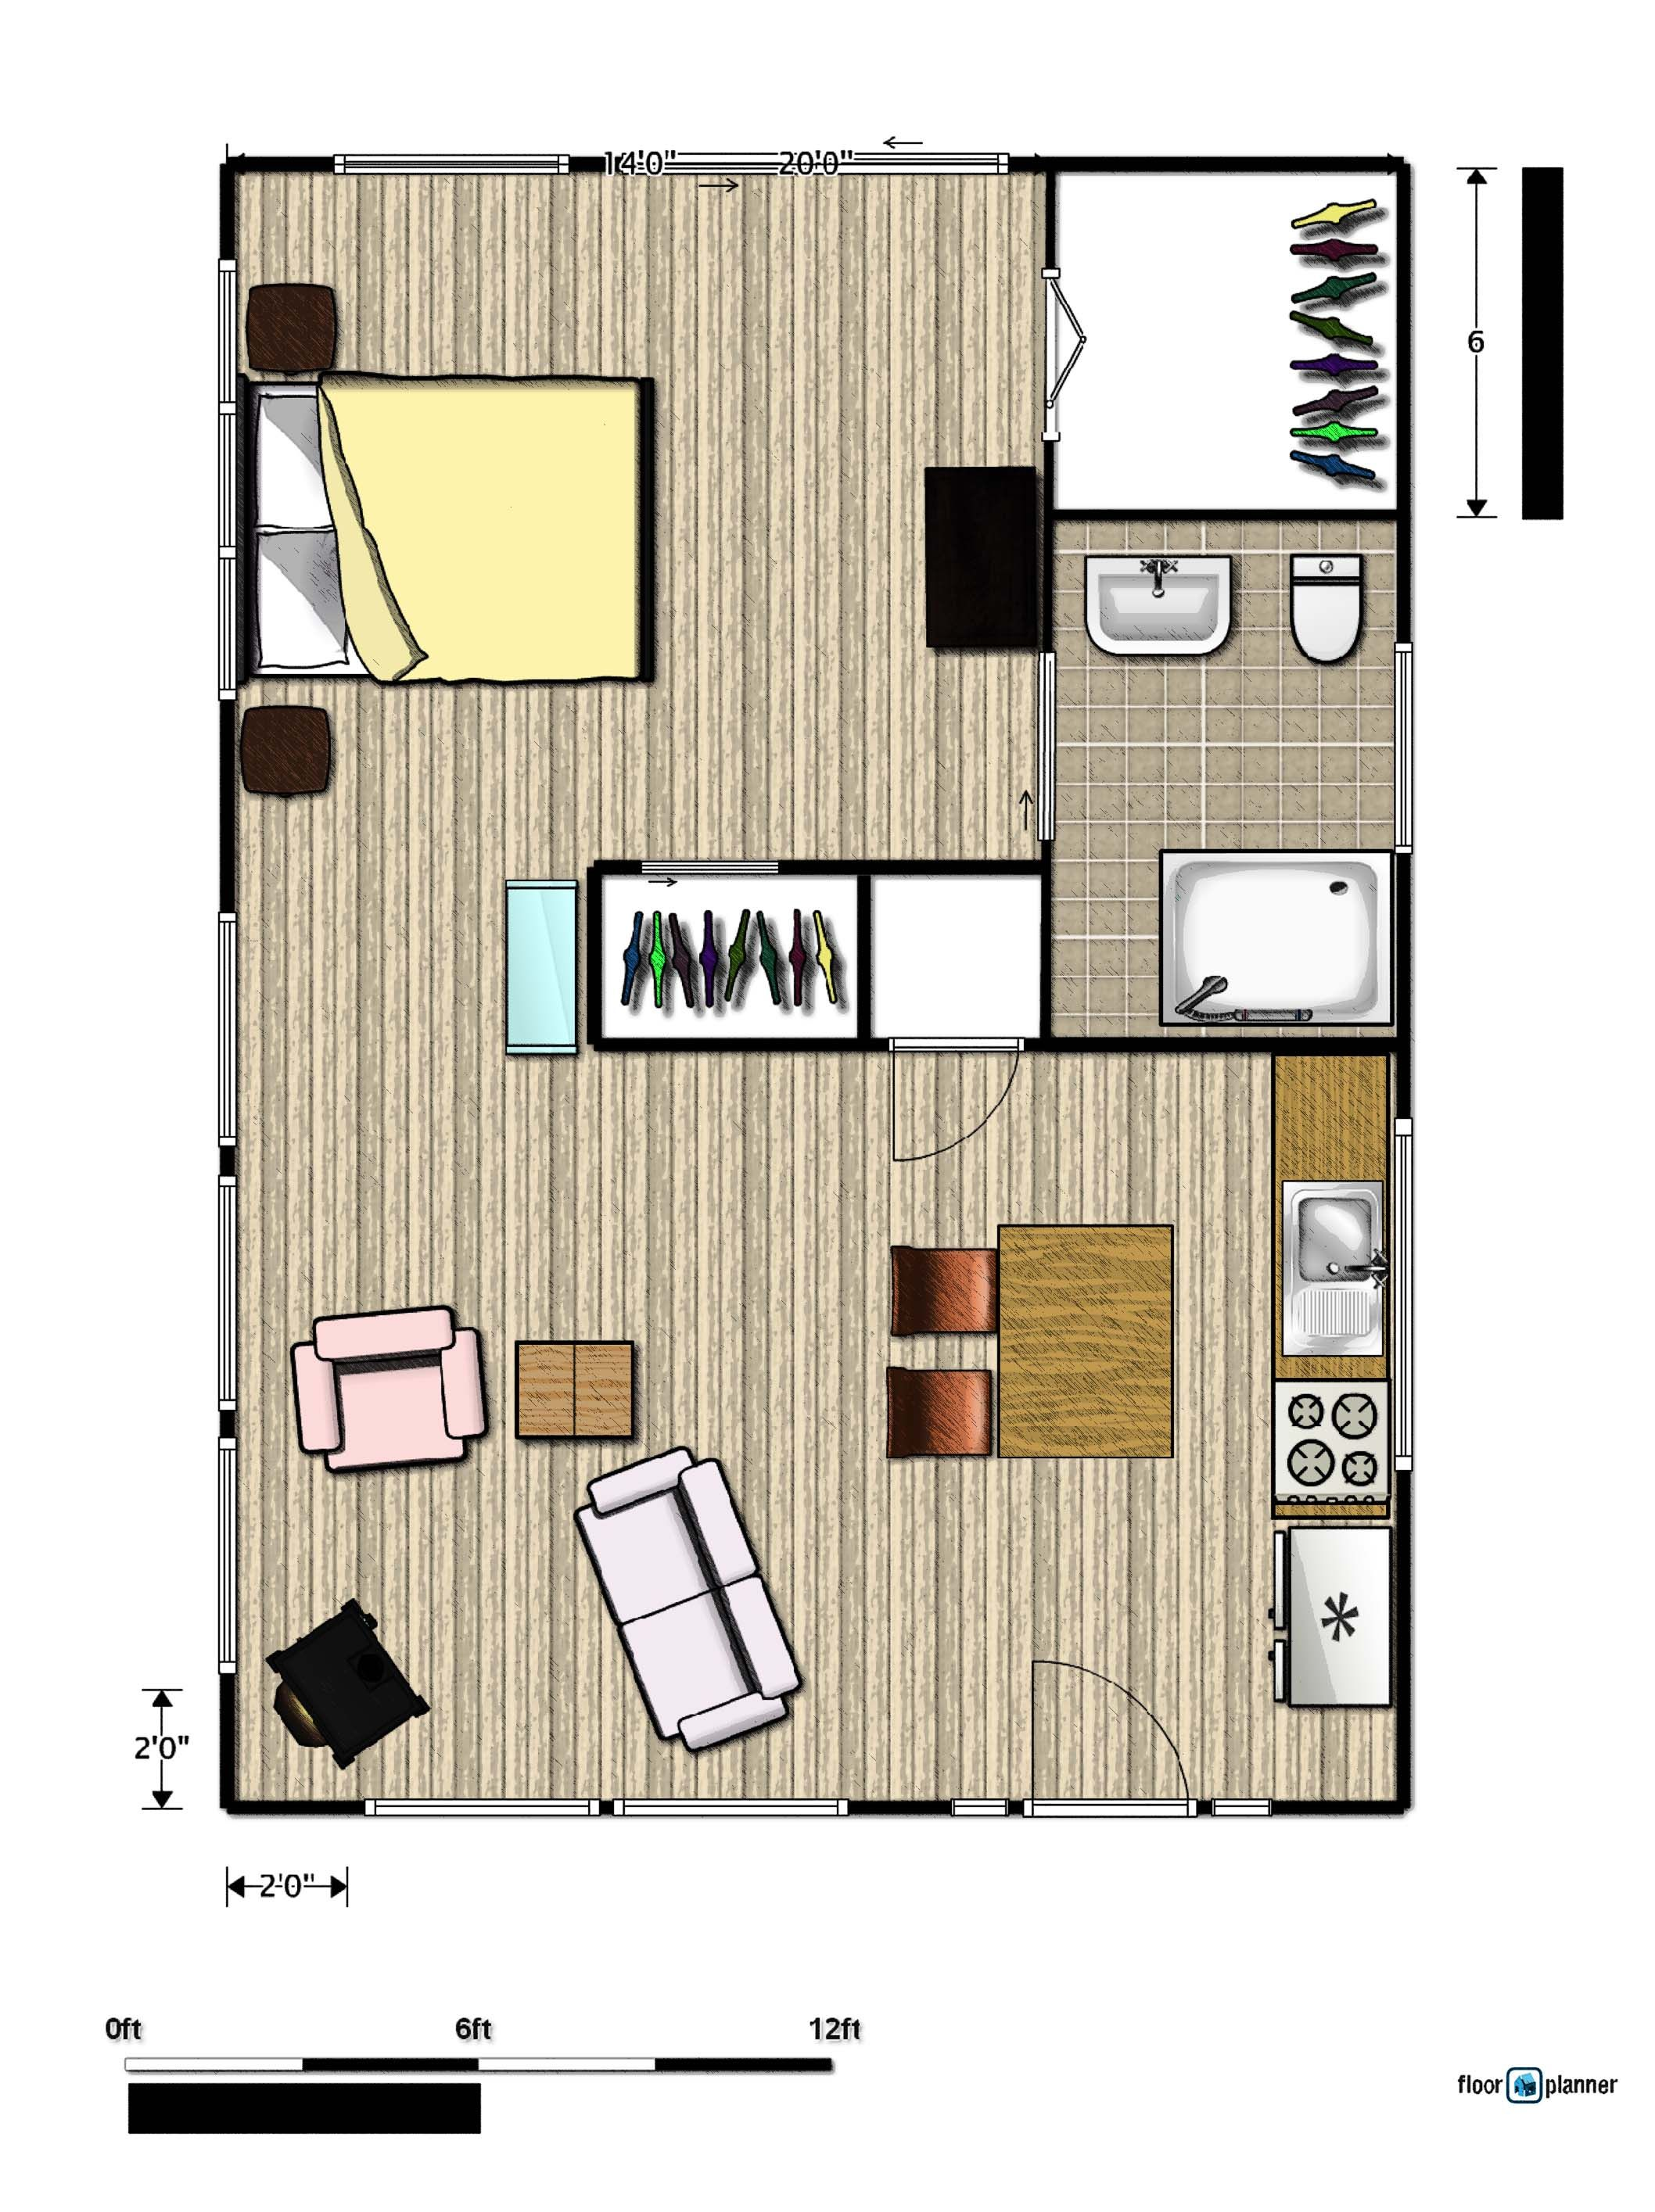 500 Square Foot Ranch Floor Plan Simple Basic Google Search Square House Floor Plans Small House Floor Plans Guest House Plans